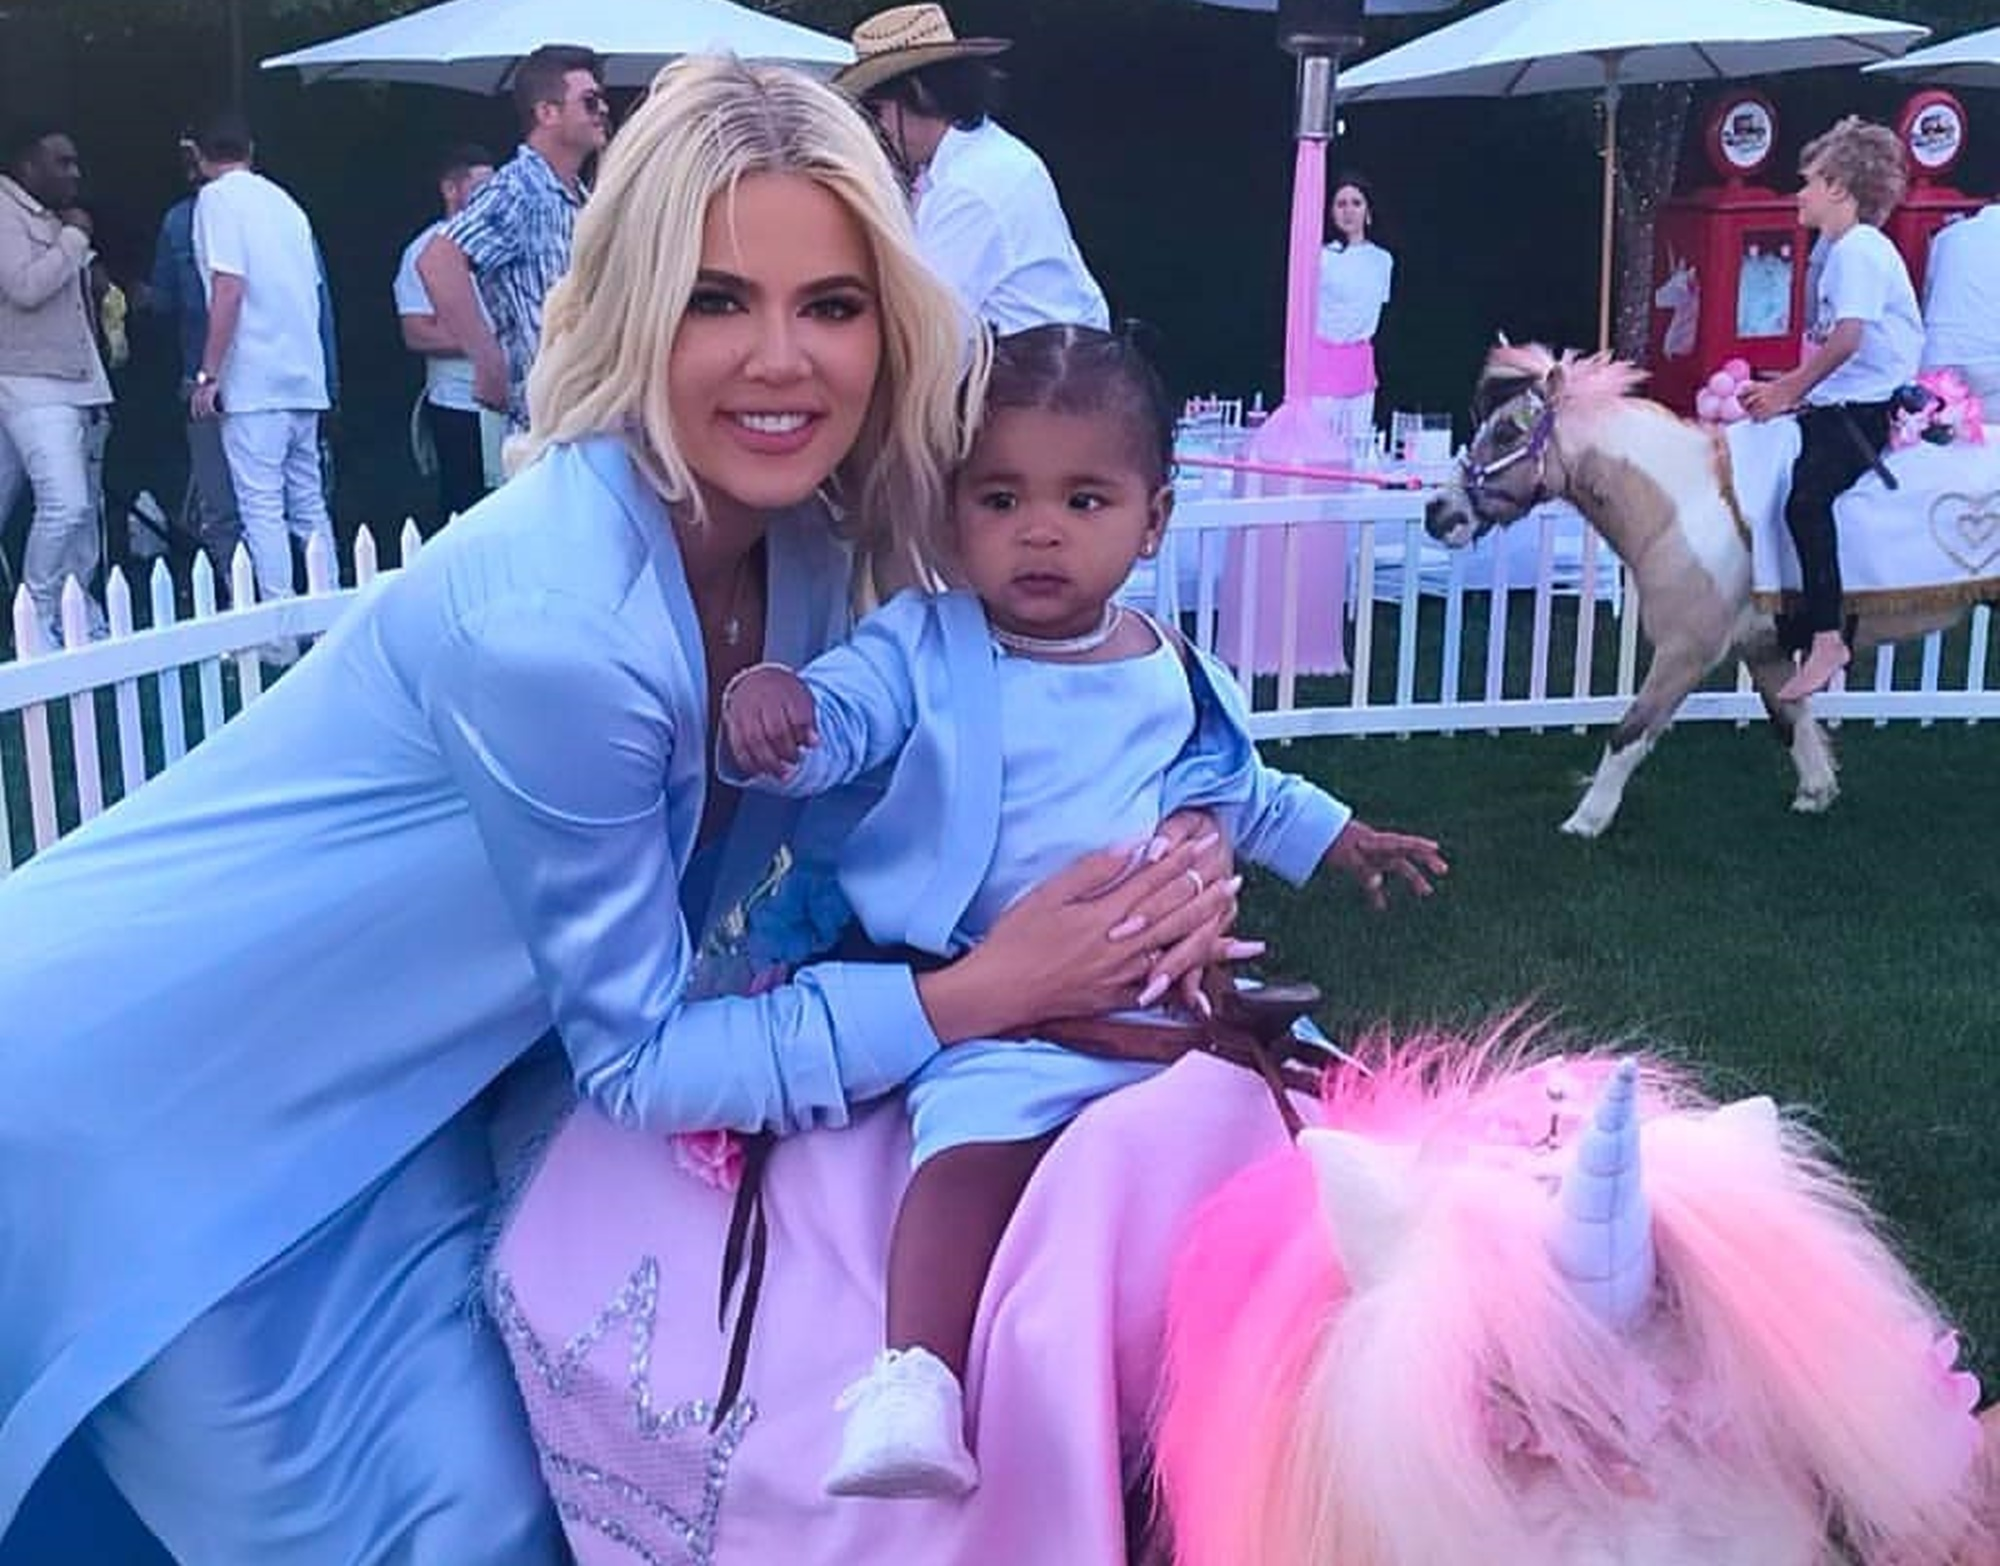 tristan-thompson-shares-adorable-video-where-he-is-celebrating-at-baby-trues-birthday-party-with-khloe-kardashian